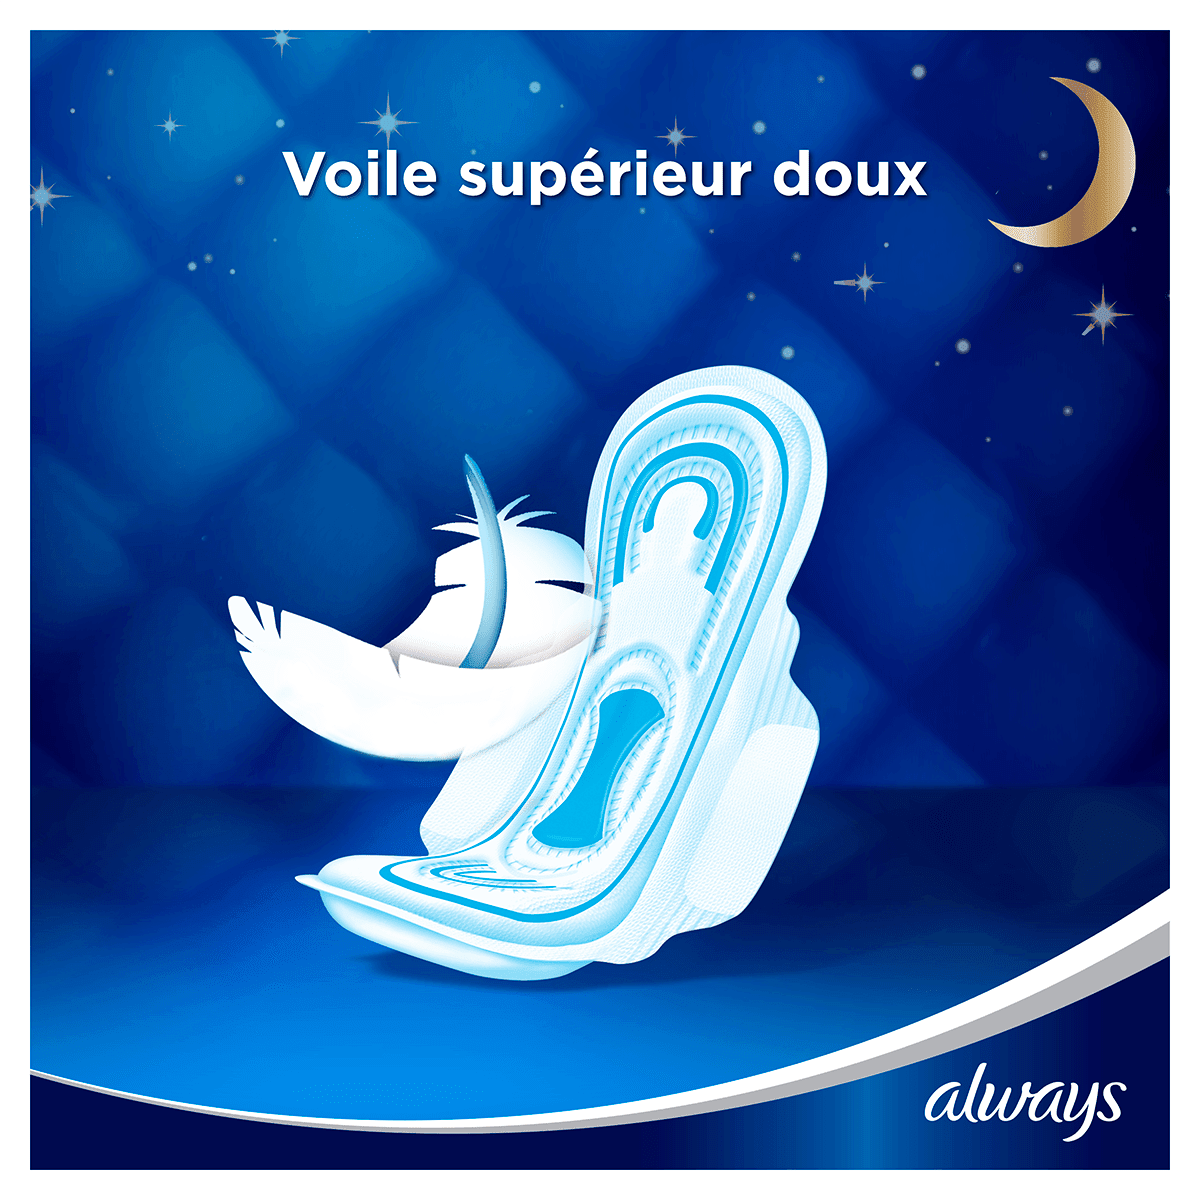 ALWAYS Maxi Night Serviettes Hygiéniques Cycle Menstruel 7